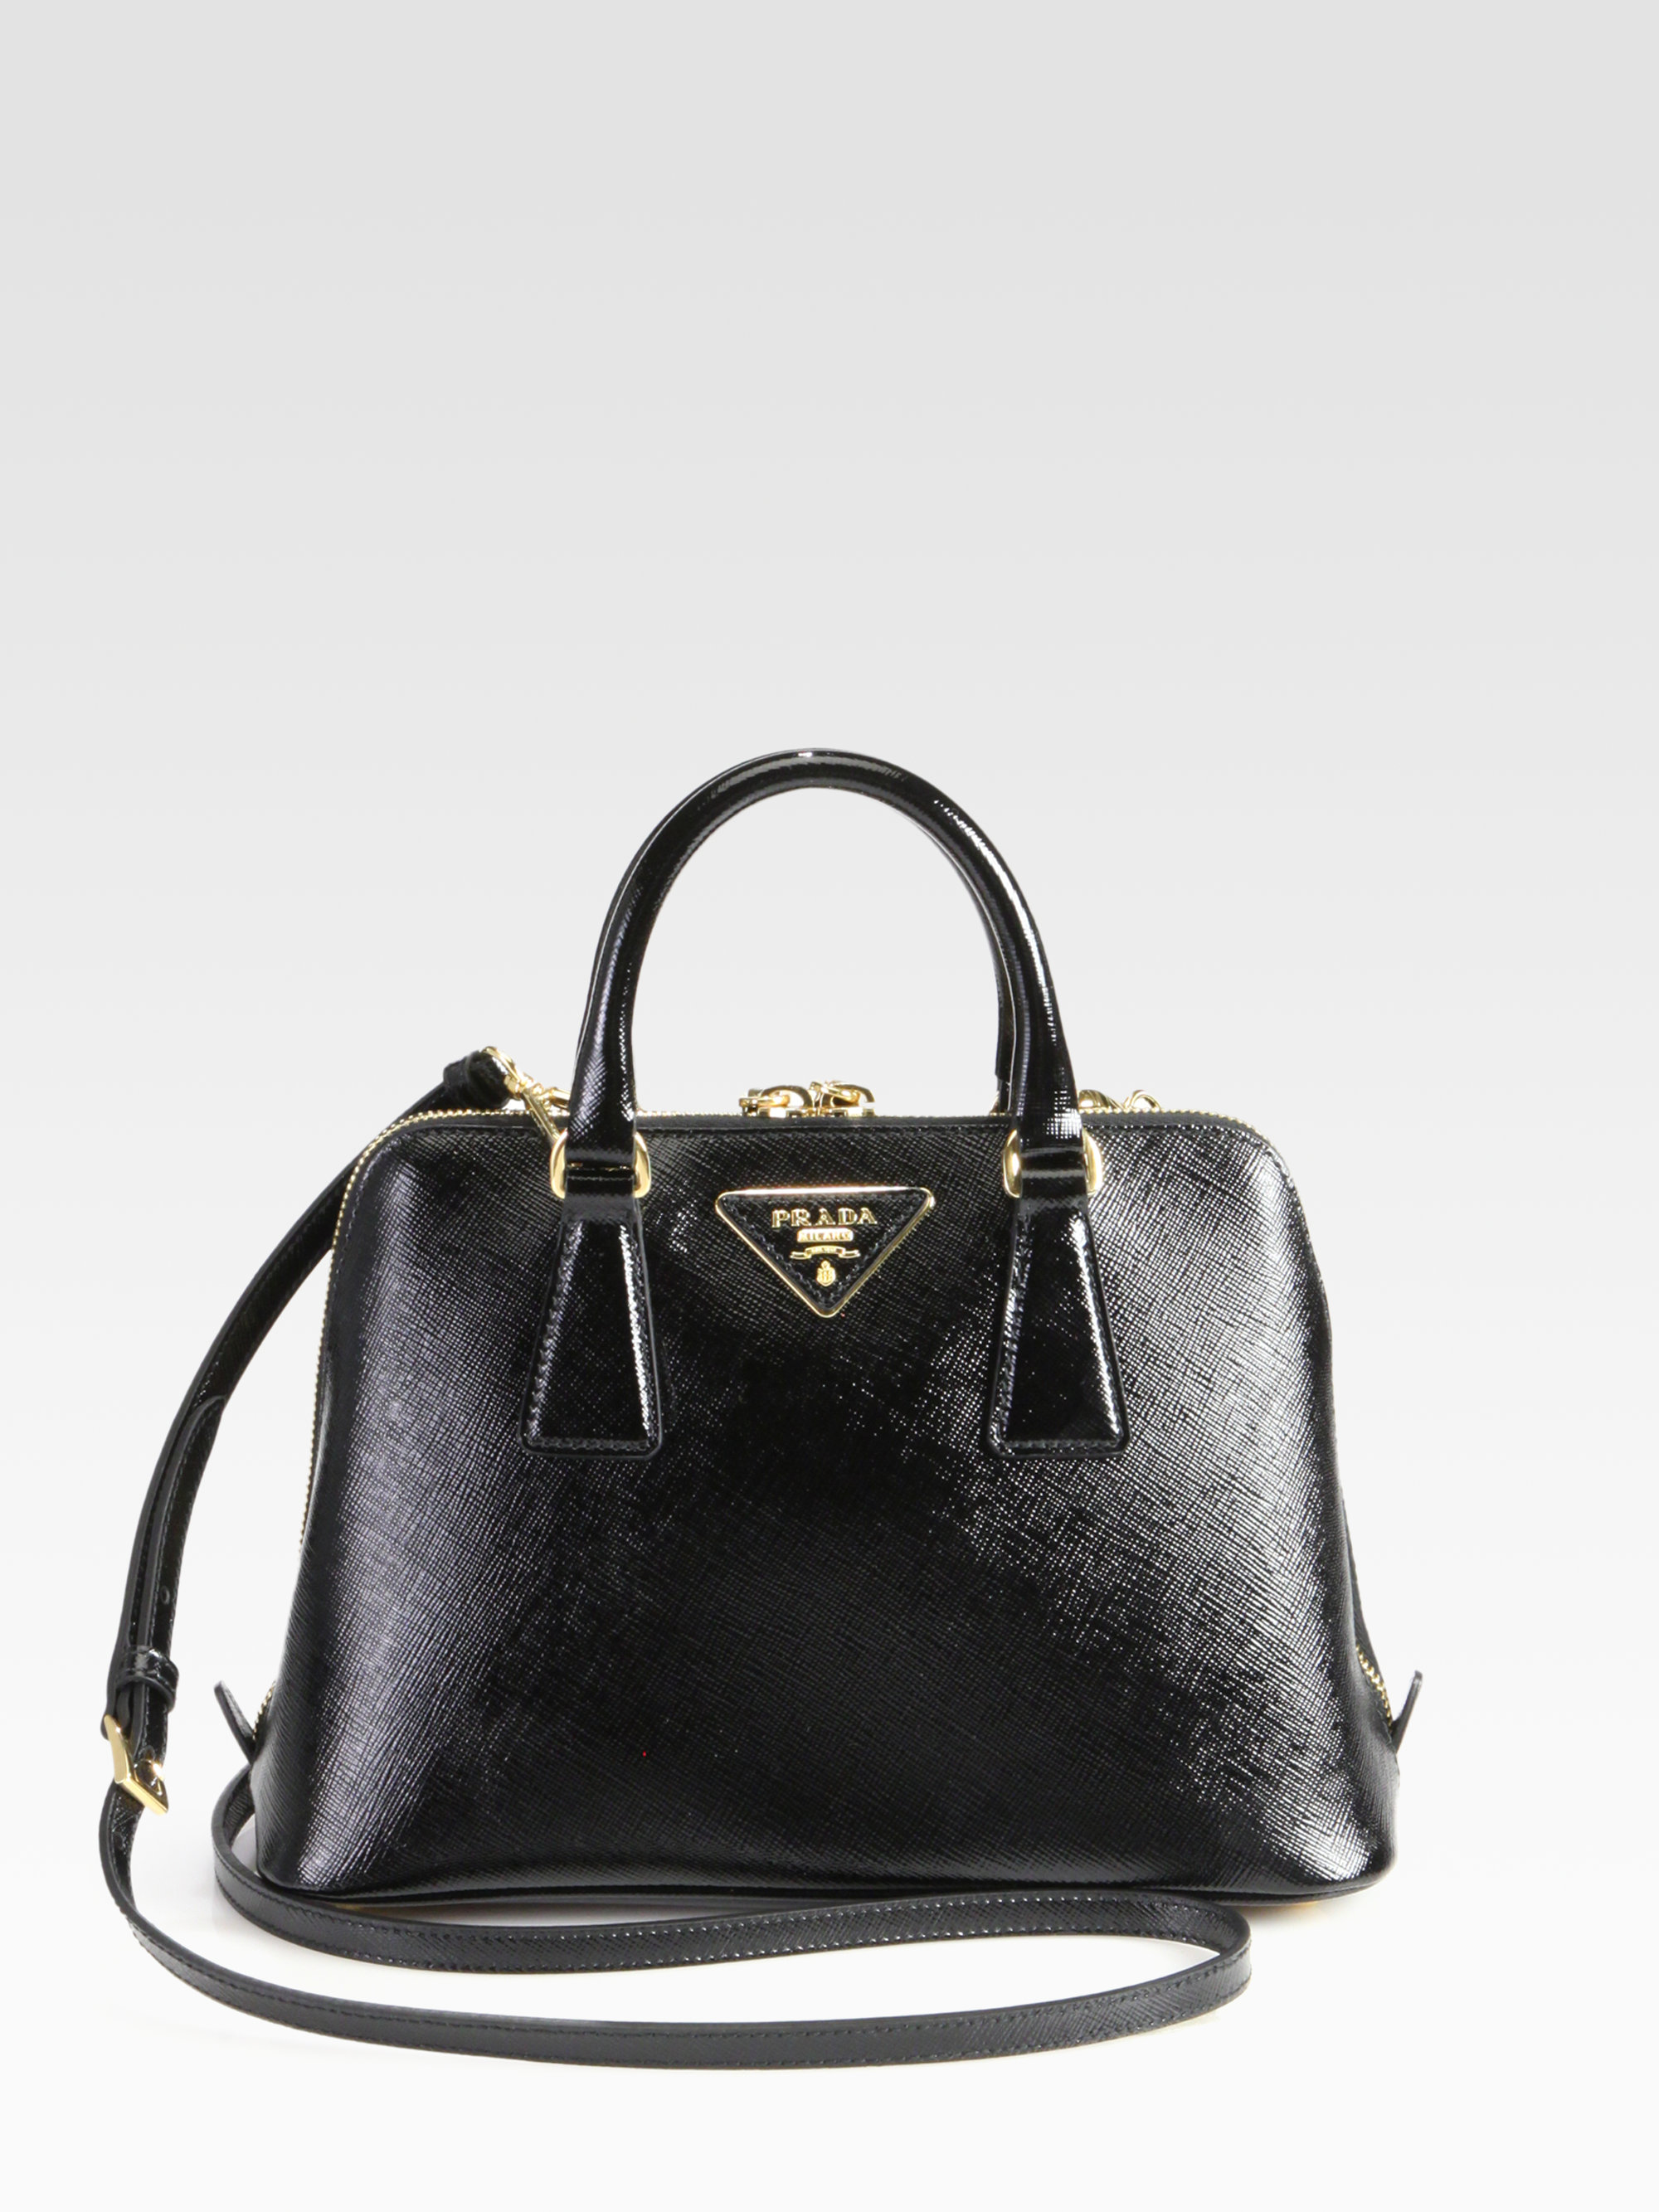 prada ostrich leather handbag - prada black saffiano bag